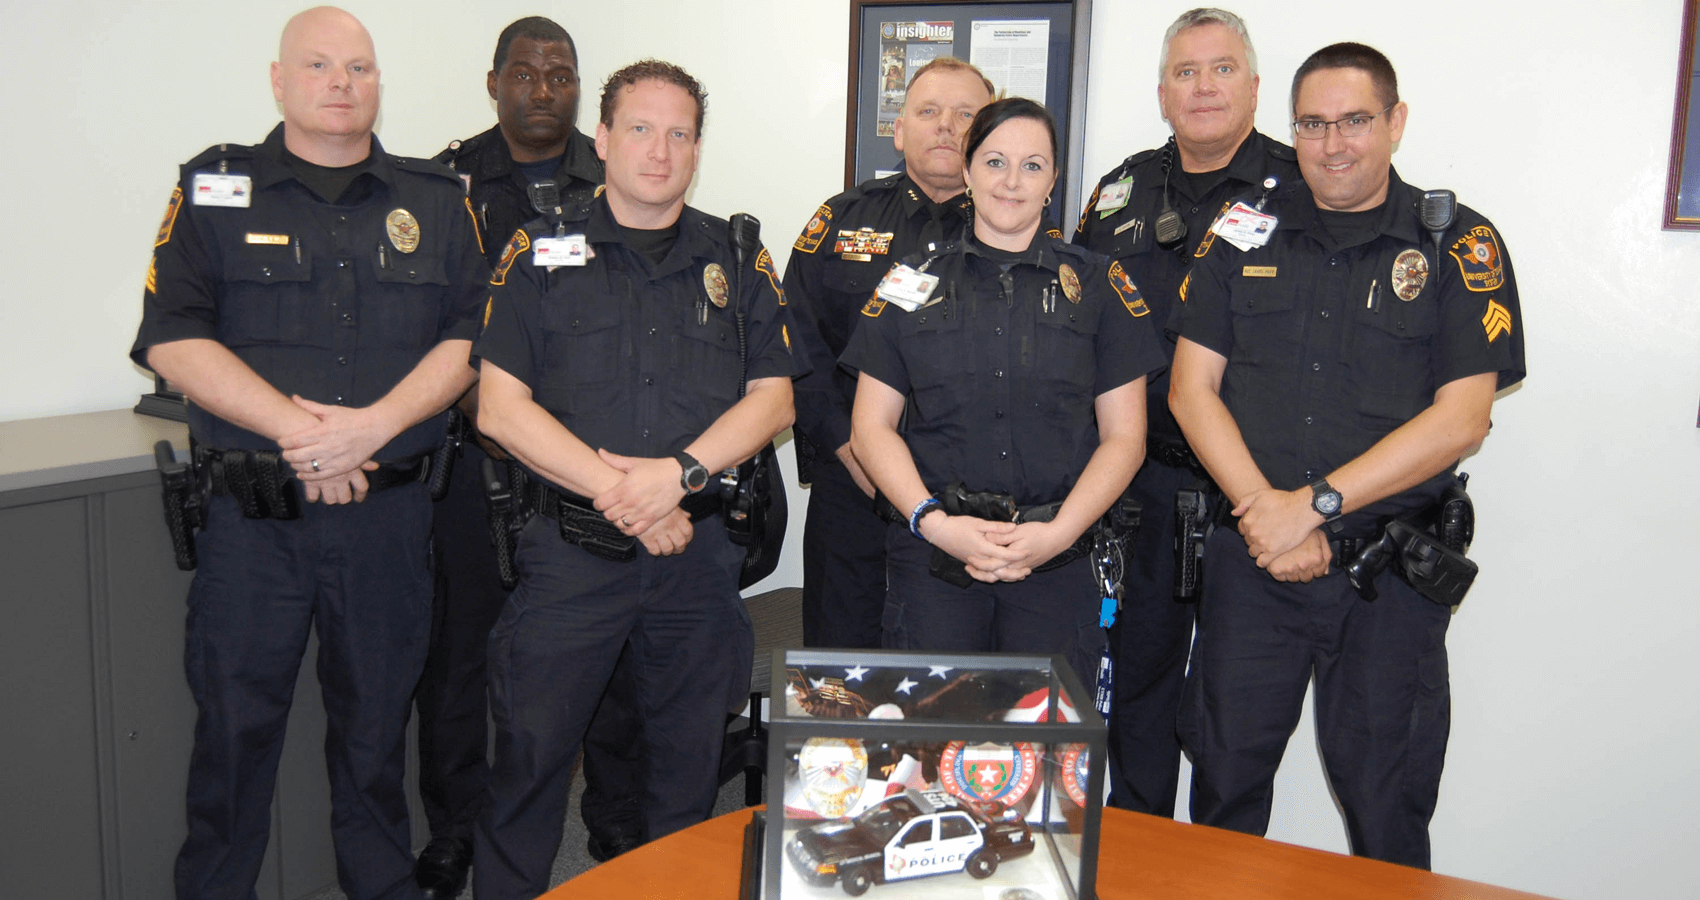 UTMB Police with 2015 Pacesetter Award